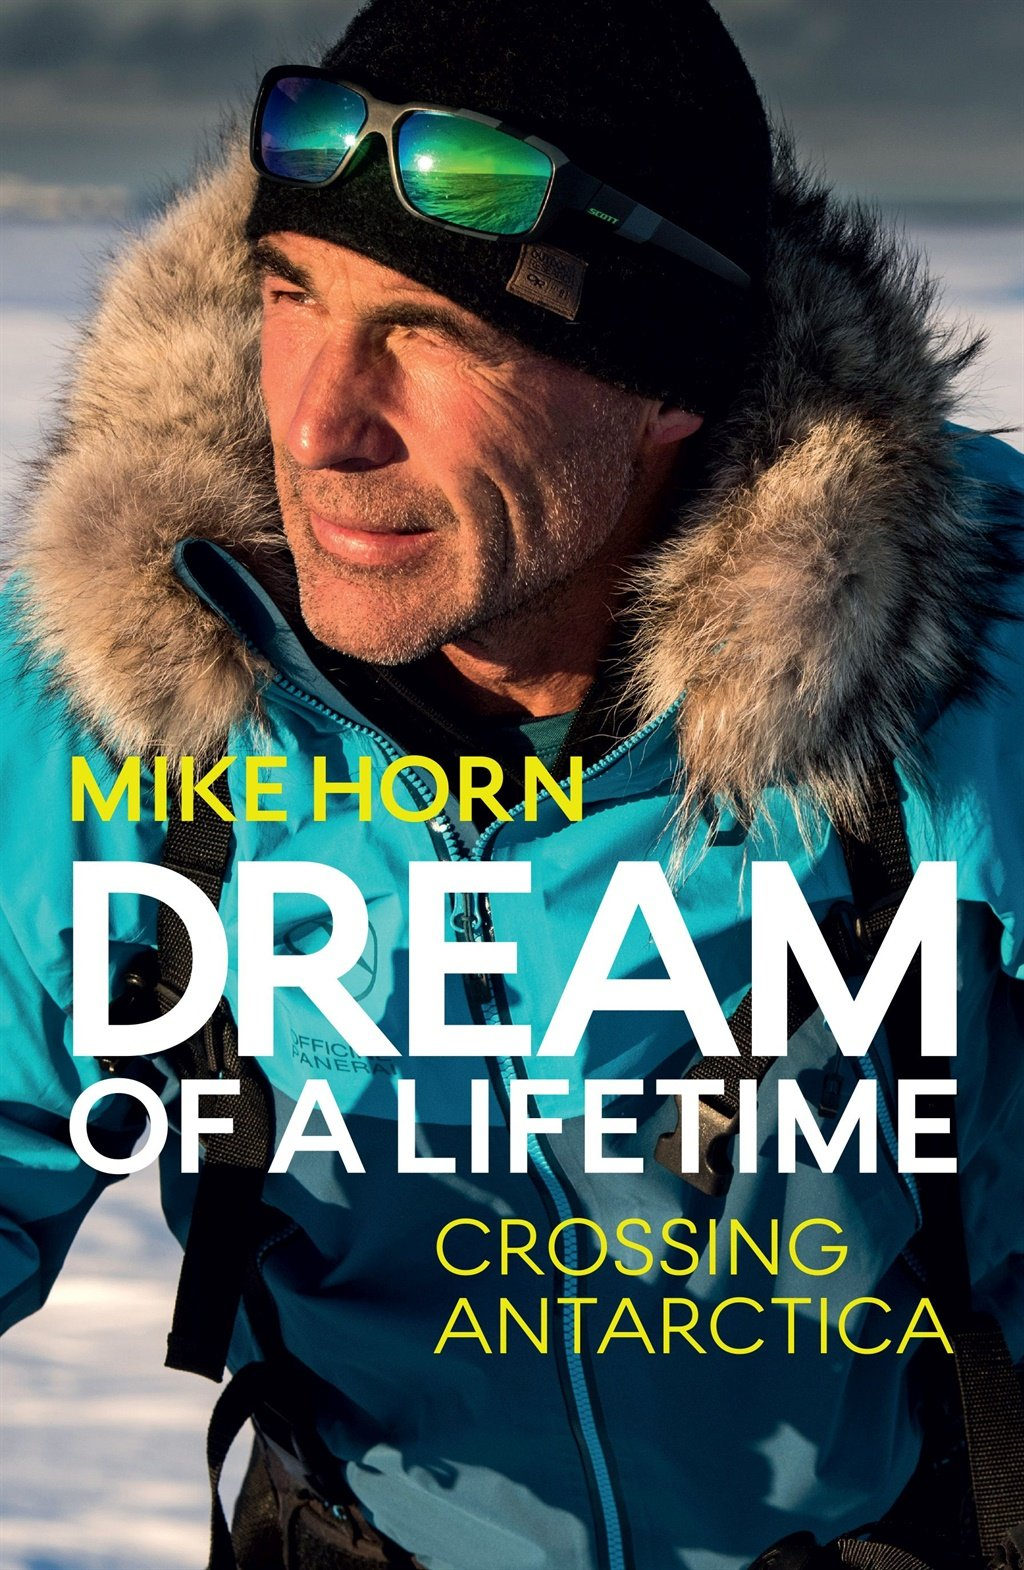 South African-born explorer Mike Horn is a world-renowned explorer, host of the French reality television show The Island, and in 2014 was the mental coach of Germany's national soccer team, who won that year's FIFA World Cup. He has been described as France's Bear Grylls.